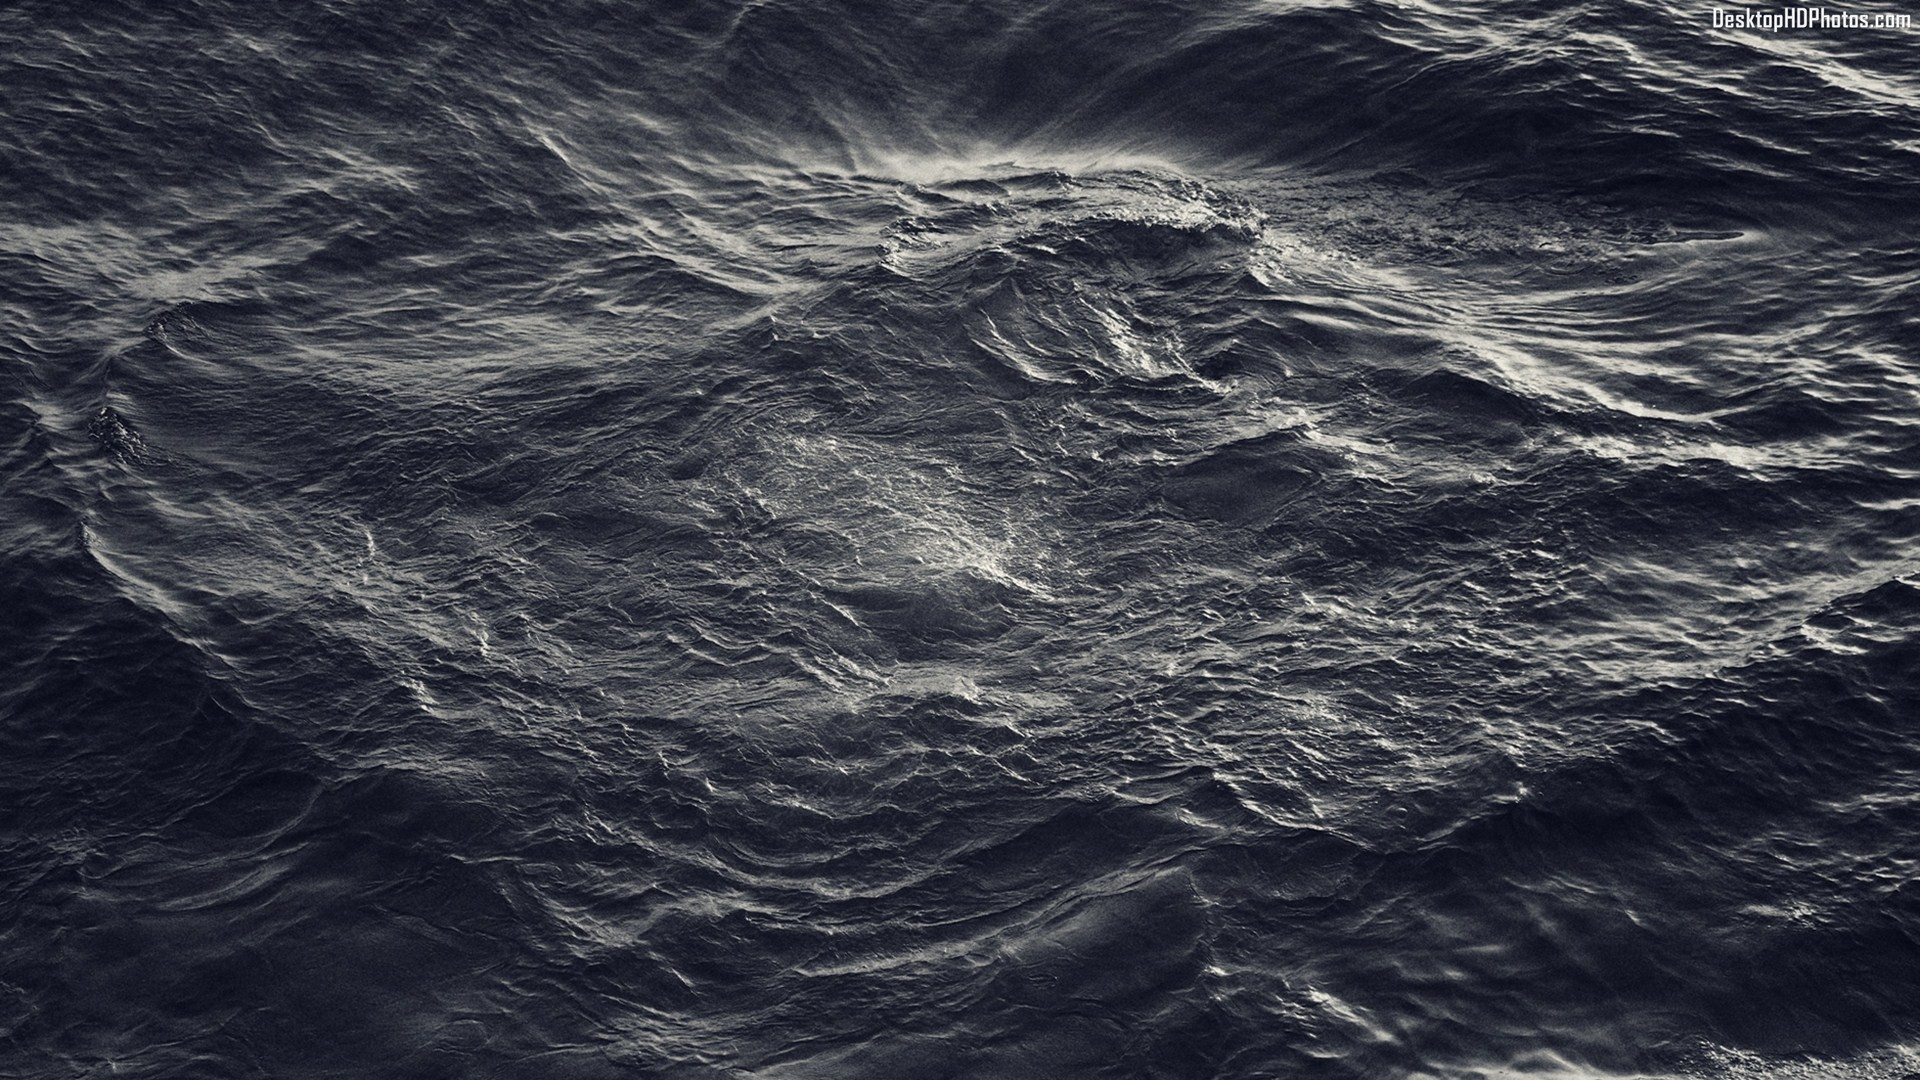 Dark-Water-Waves-Free-Desktop-Background.jpg